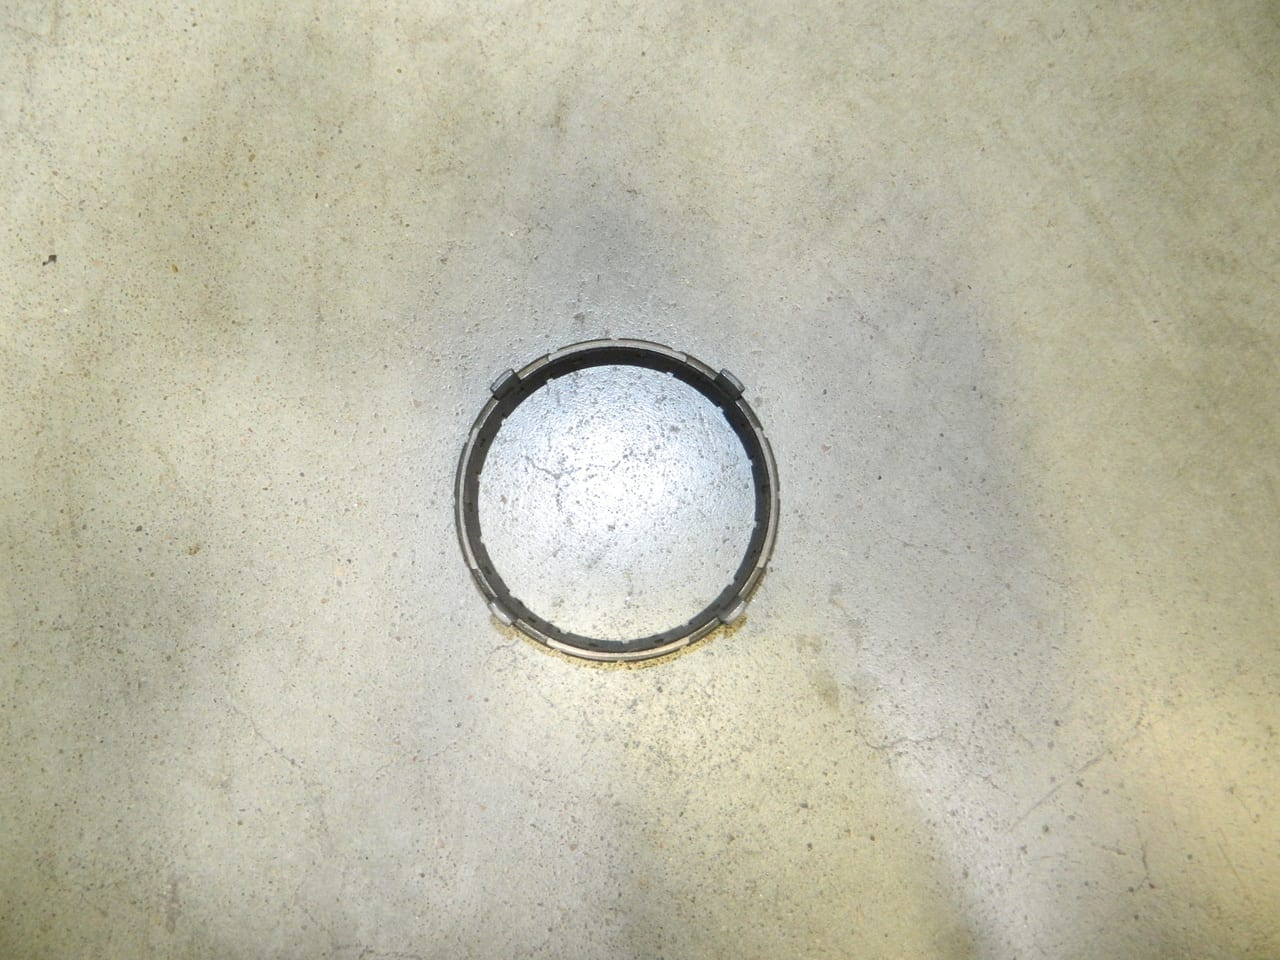 271D 273D 271F 273F Fiber Lined Synchronizer Ring Synchro Ford Dodge Transfer Case